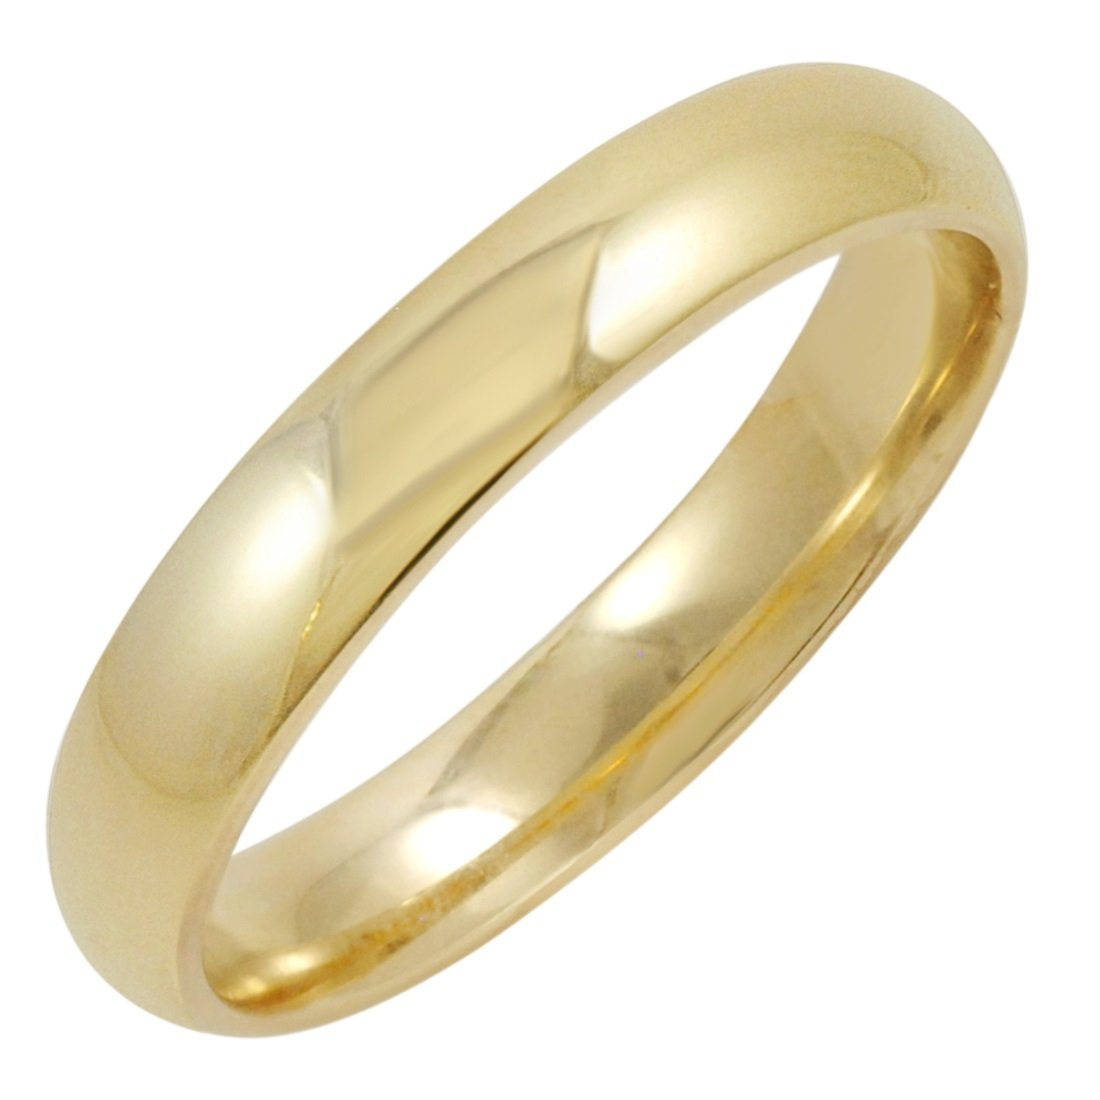 Men's 10K Yellow Gold 4mm Comfort Fit Plain Wedding Band (Available Ring Sizes 8-12 1/2) Size 9